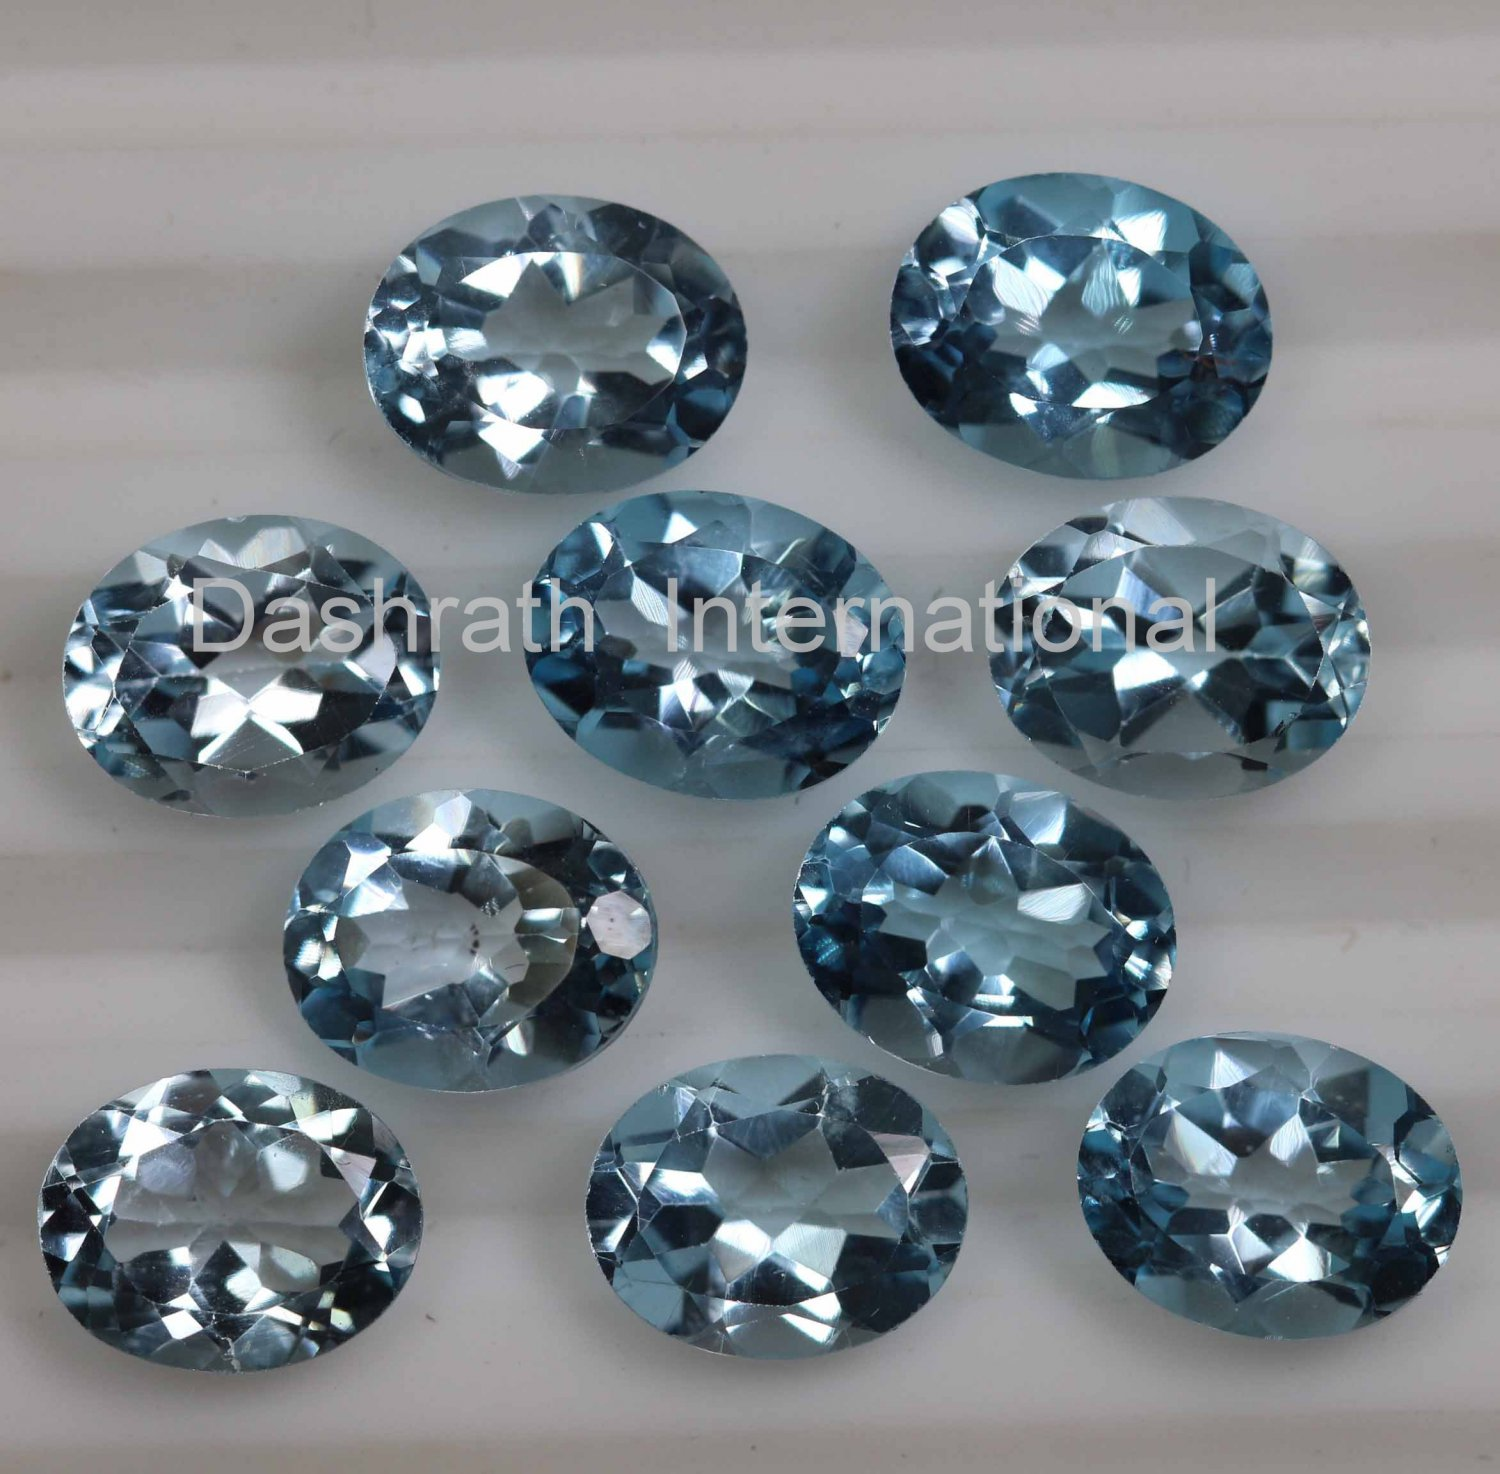 7x5mm Natural Sky Blue Topaz Faceted Cut Oval  50 Pieces Lot  Top Quality Loose Gemstone